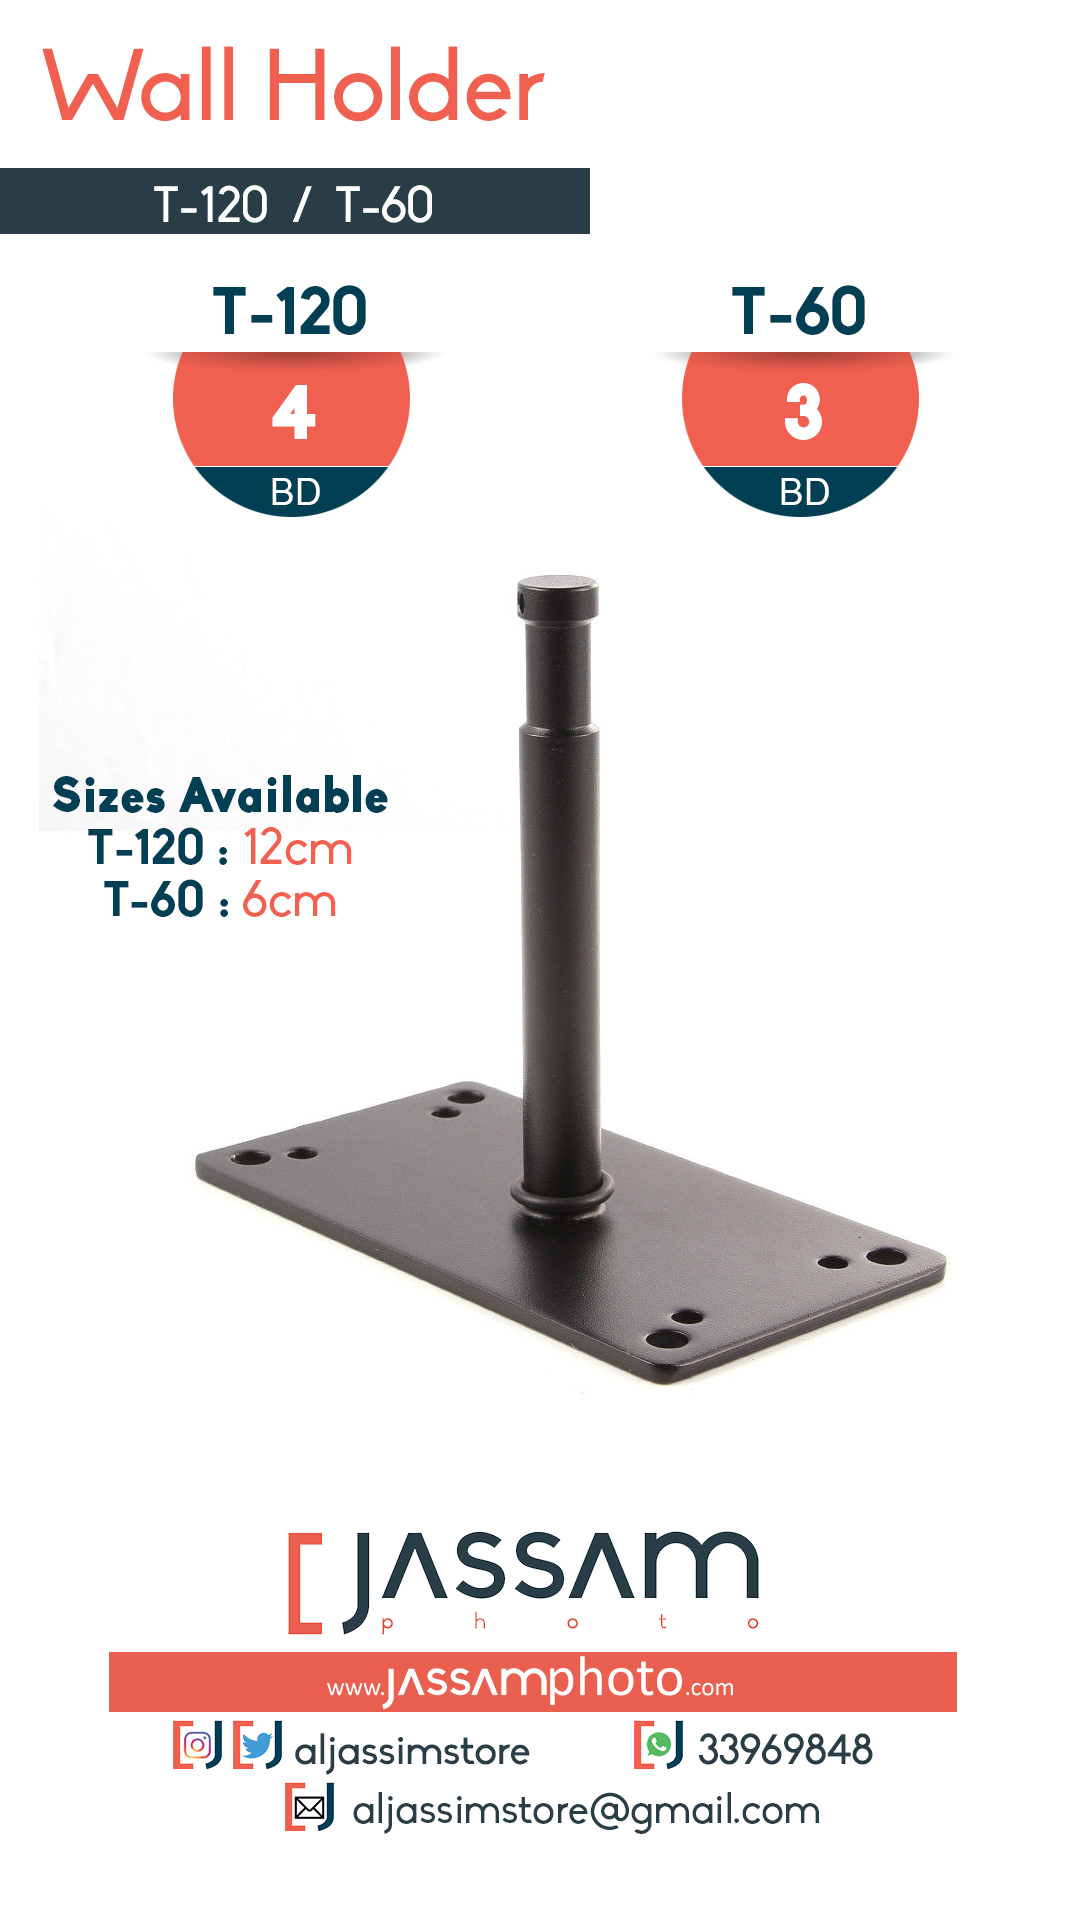 Wall Holder T-120 T-60